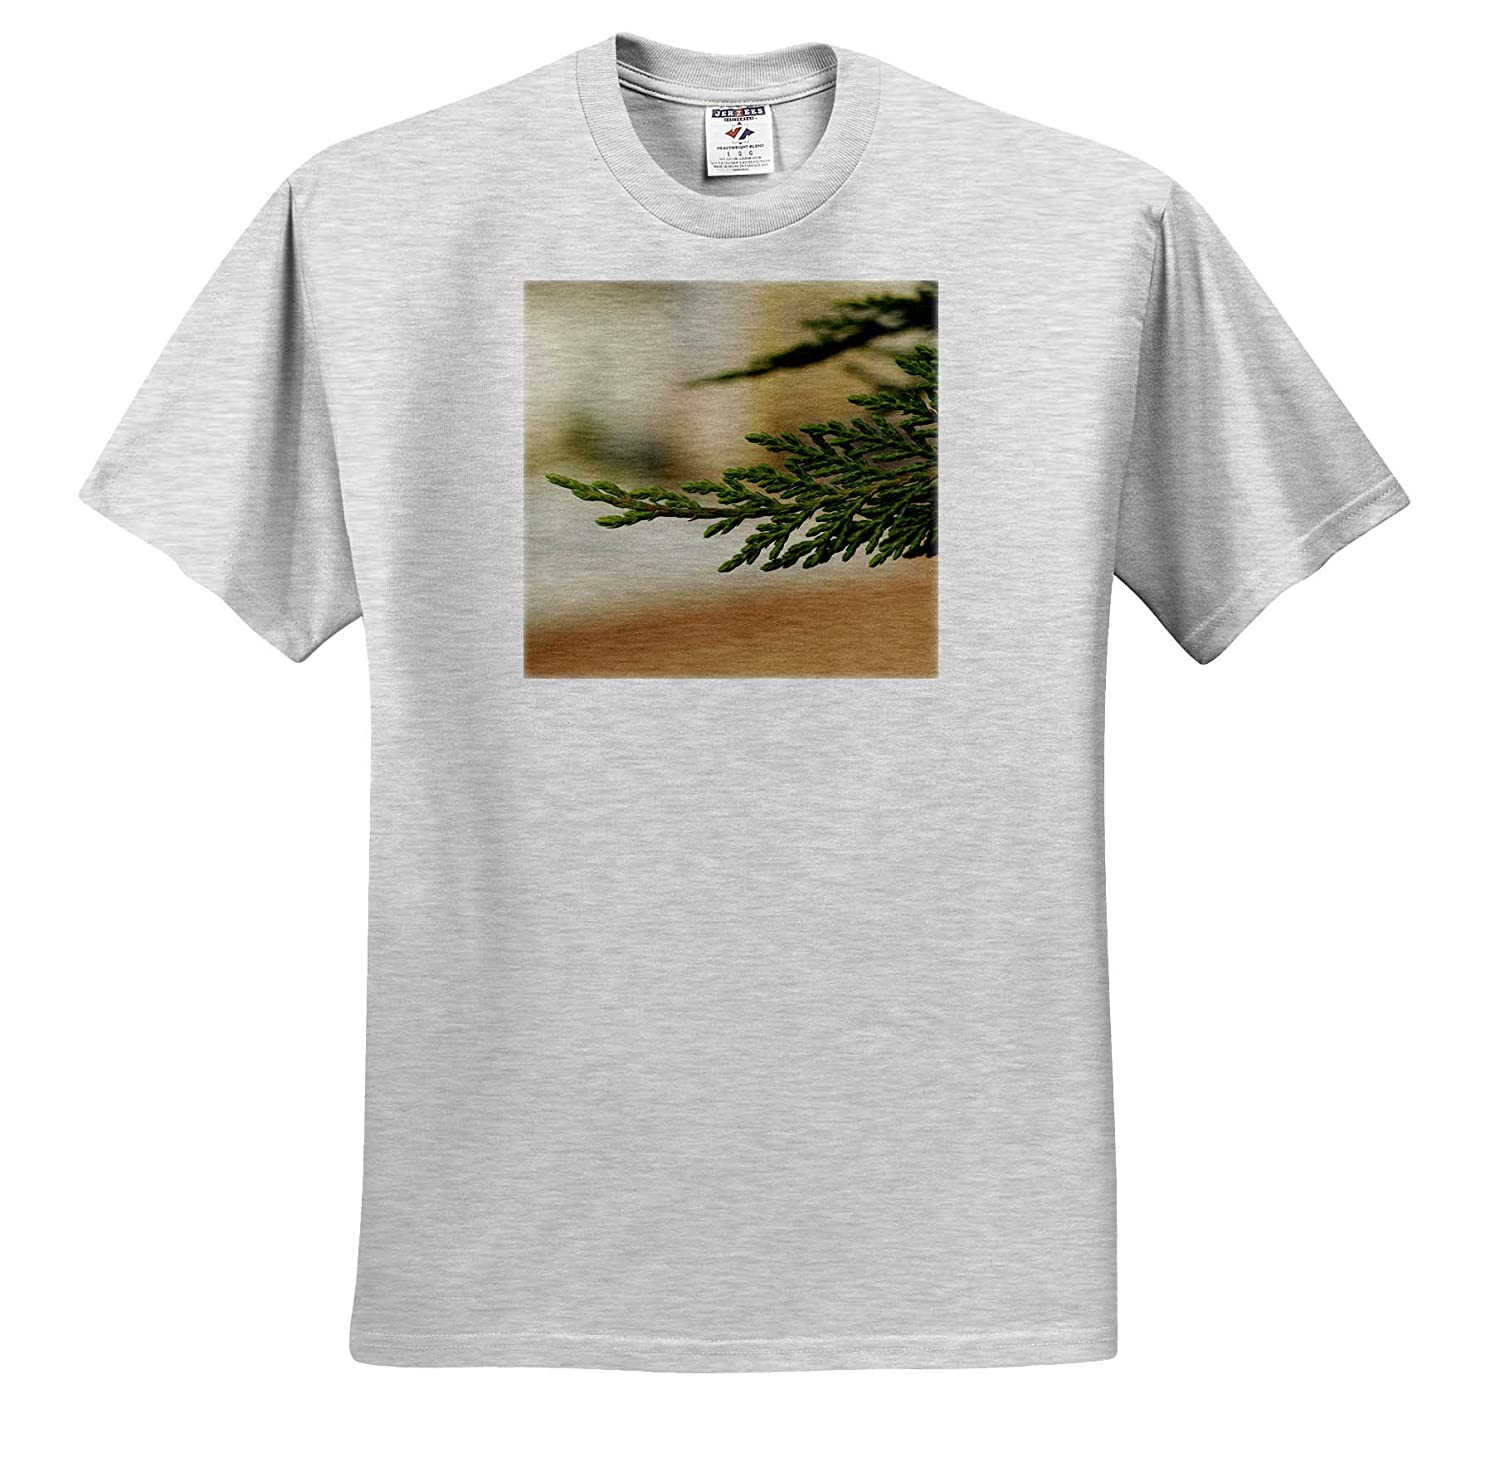 Plants - Adult T-Shirt XL Macro Photograph of The Foliage of a Leyland Cypress 3dRose Stamp City ts/_320126